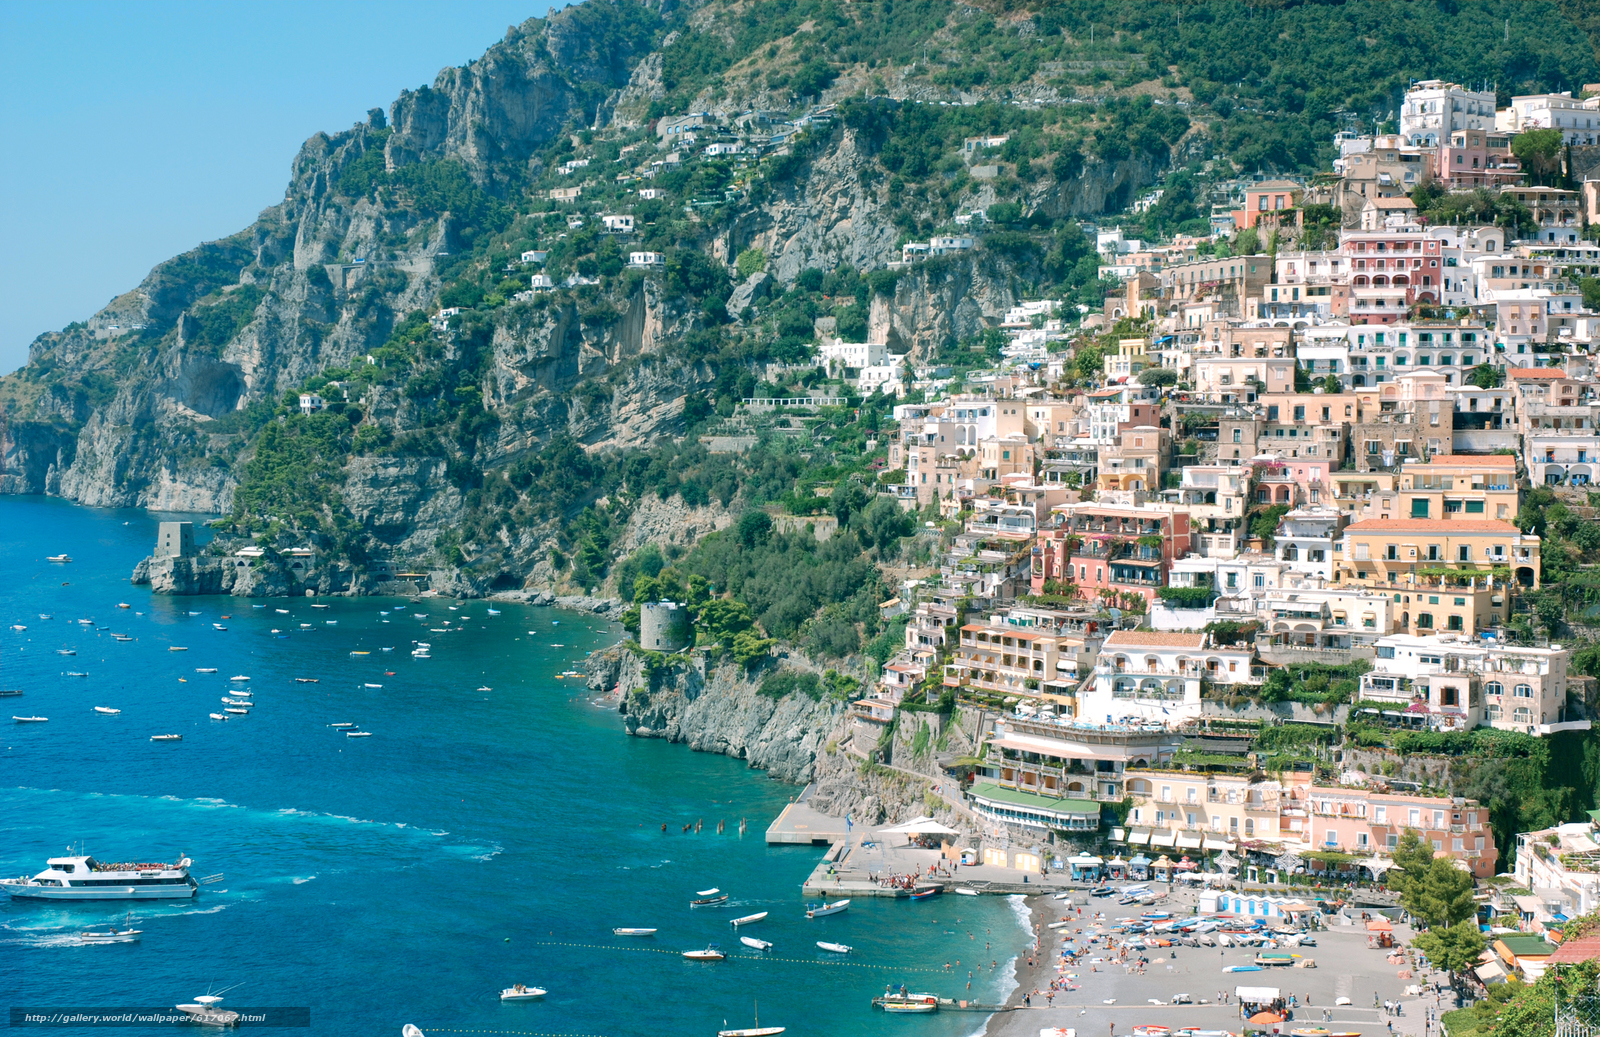 Download Wallpaper Amalfi Italy Coast Free Desktop